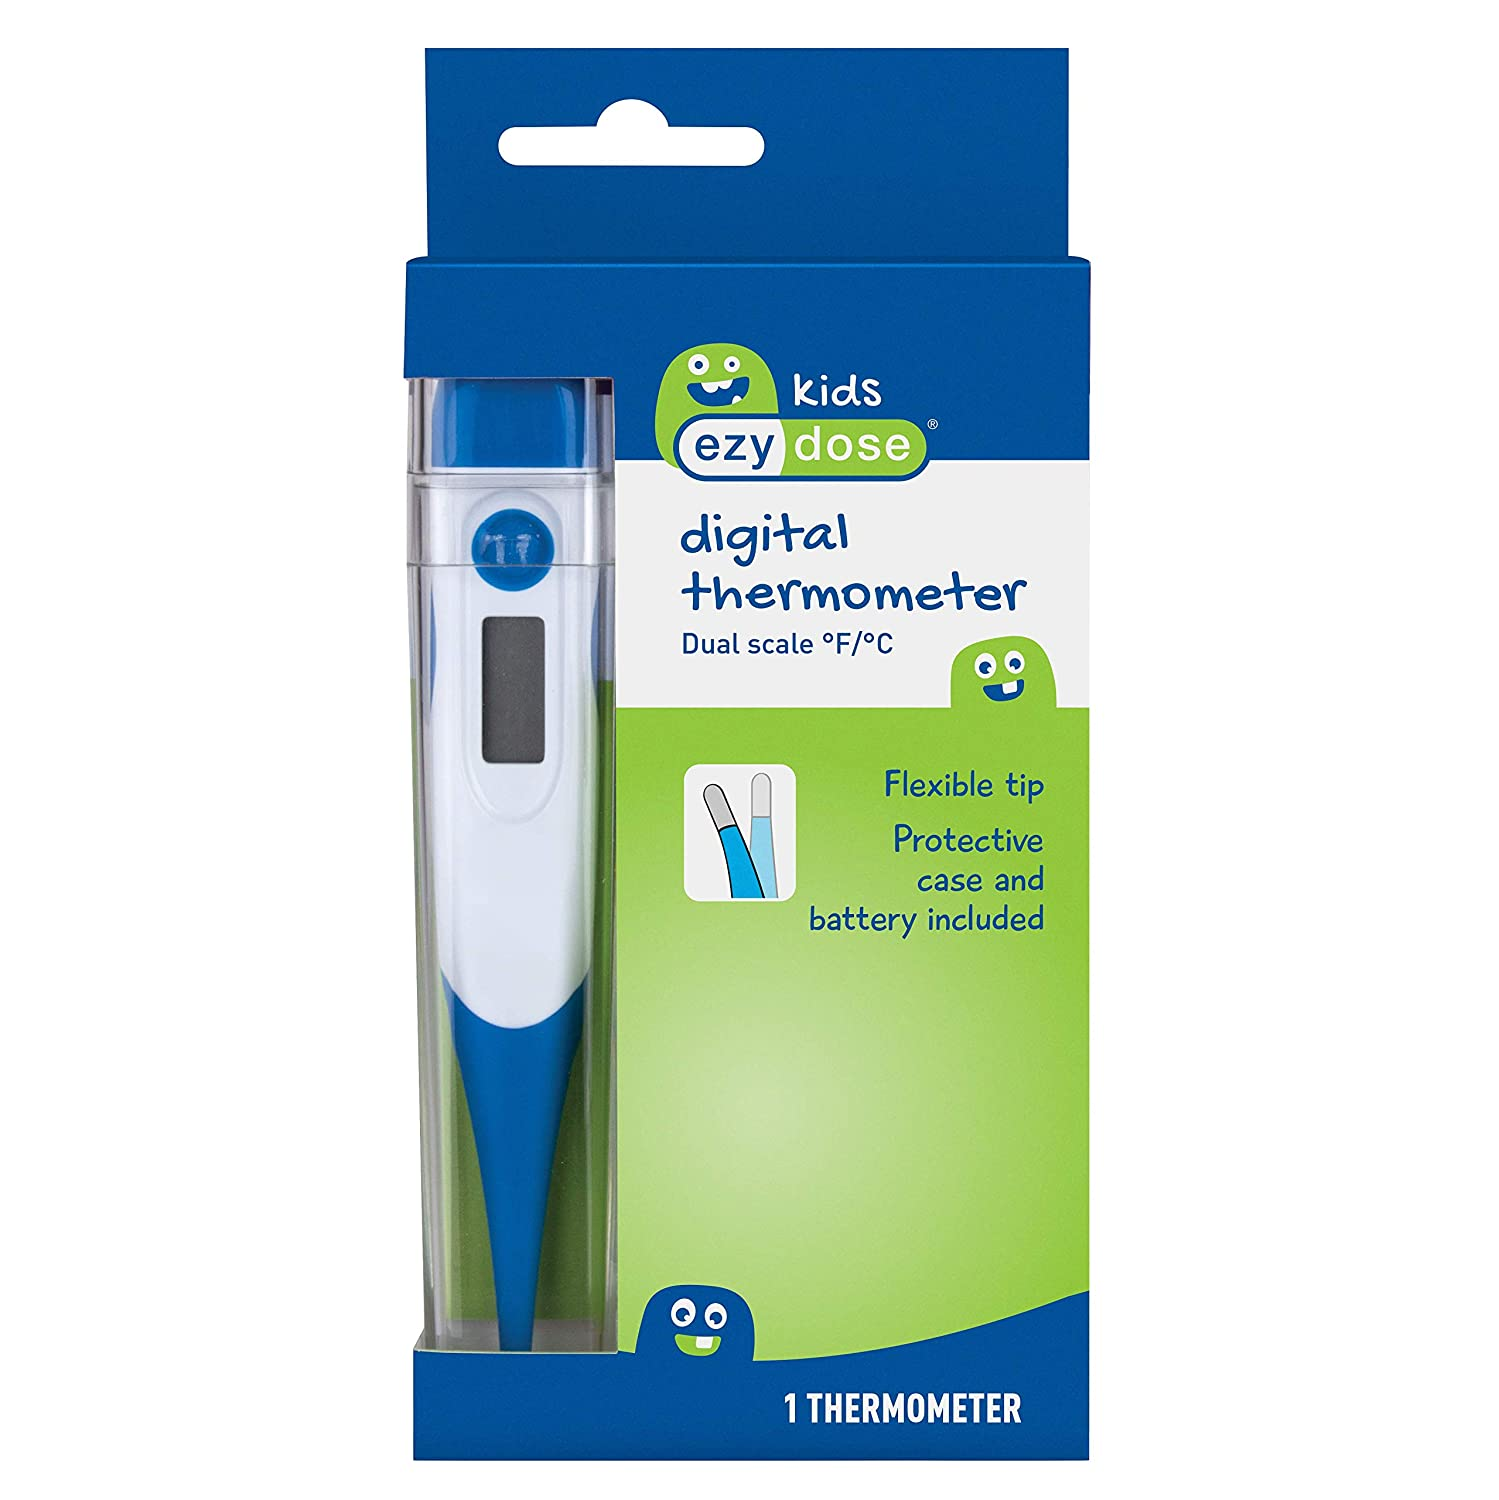 Amazon.com: Flents Dual Scale Digital Thermometer: Health & Personal Care